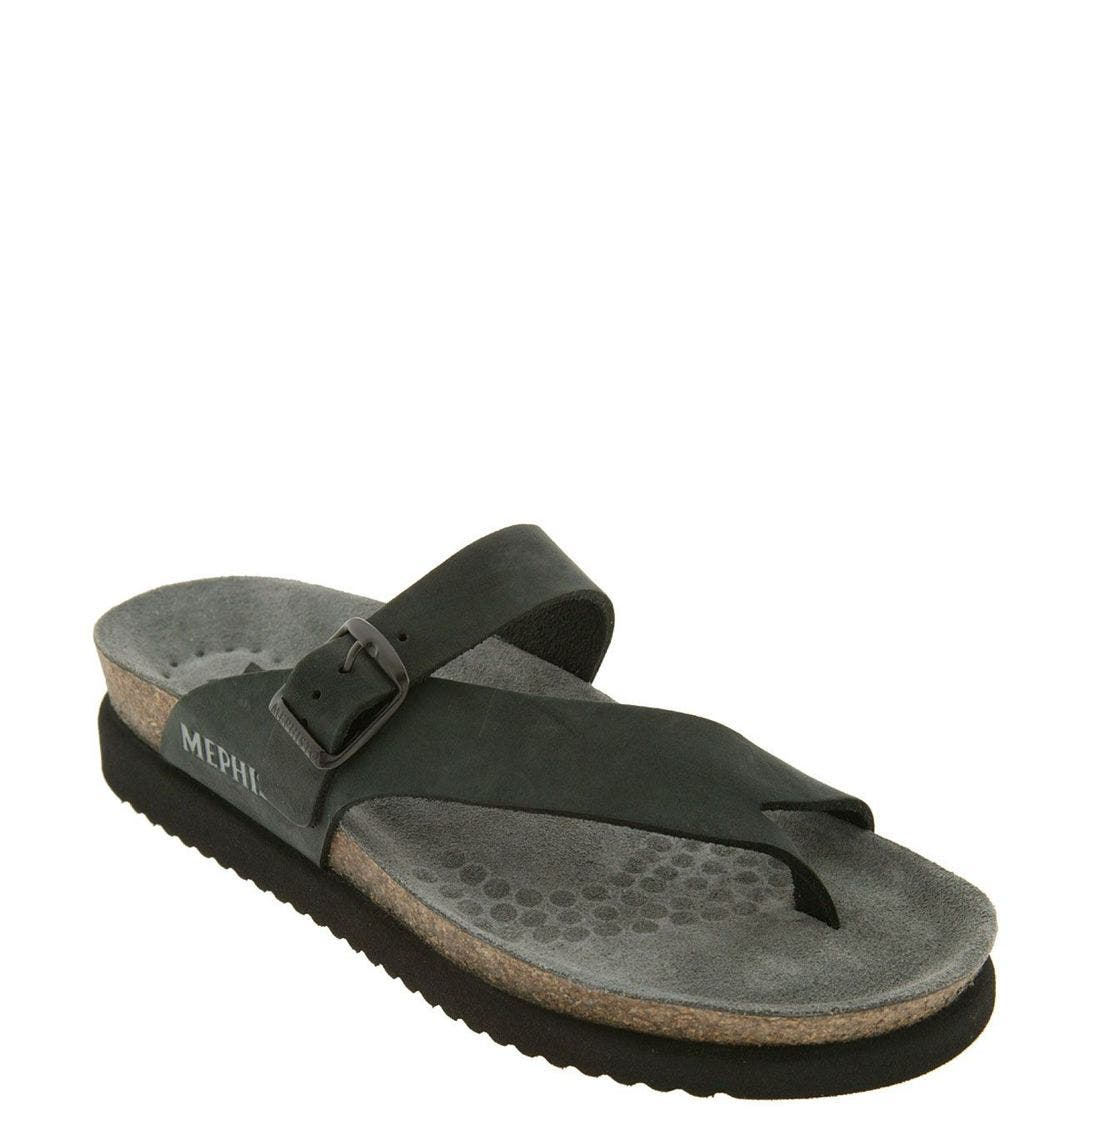 3f92fdd5faa2 Flip-Flops   Sandals for Women